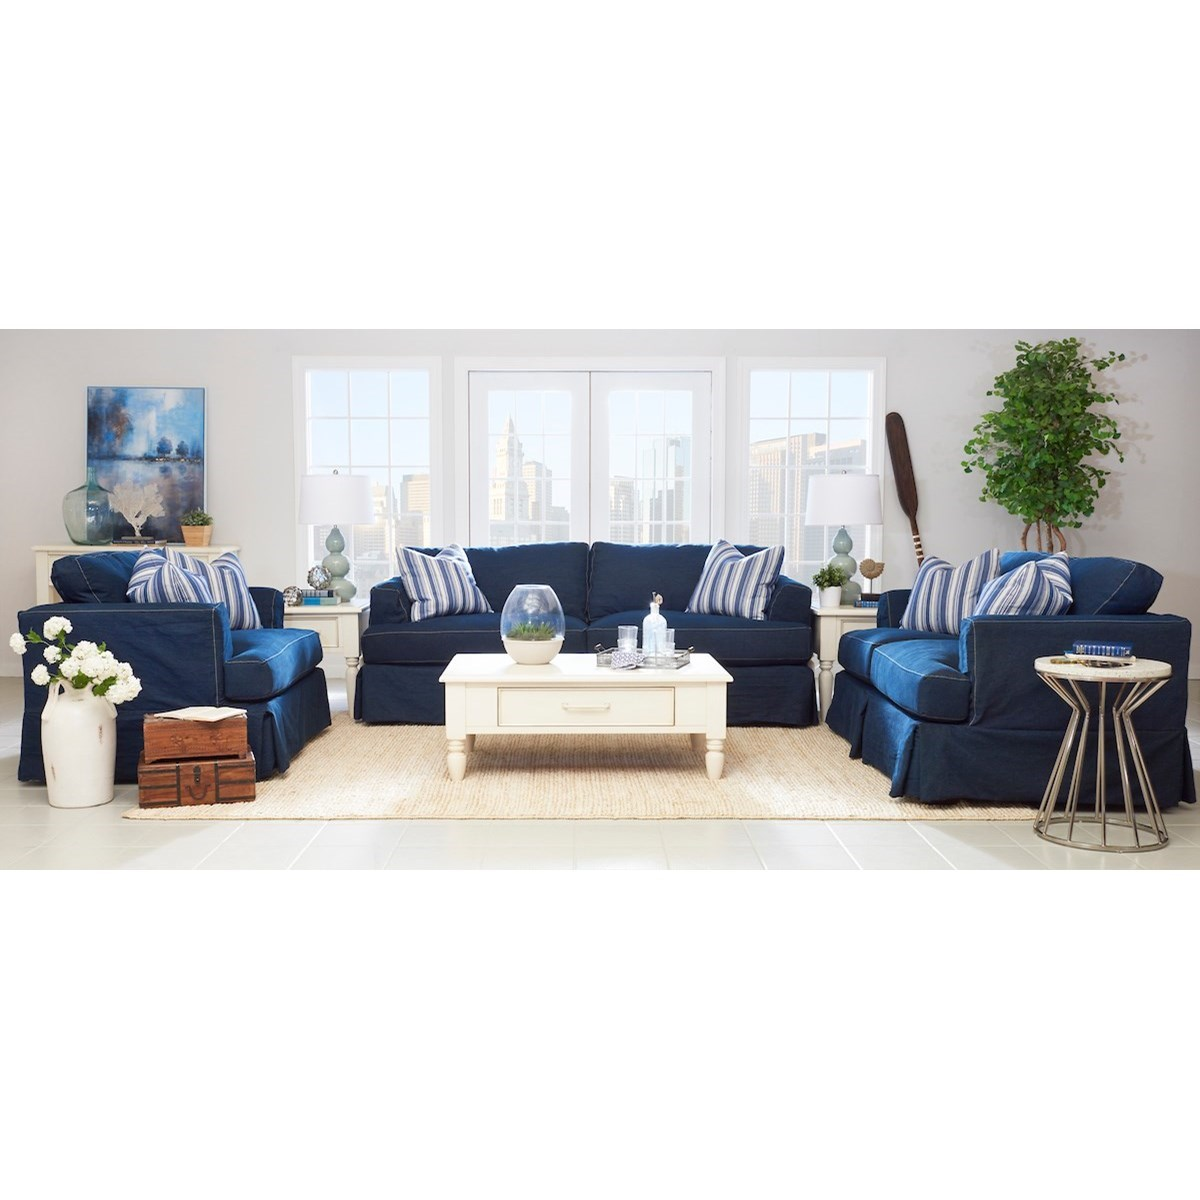 Bentley Living Room Group by Klaussner at Van Hill Furniture